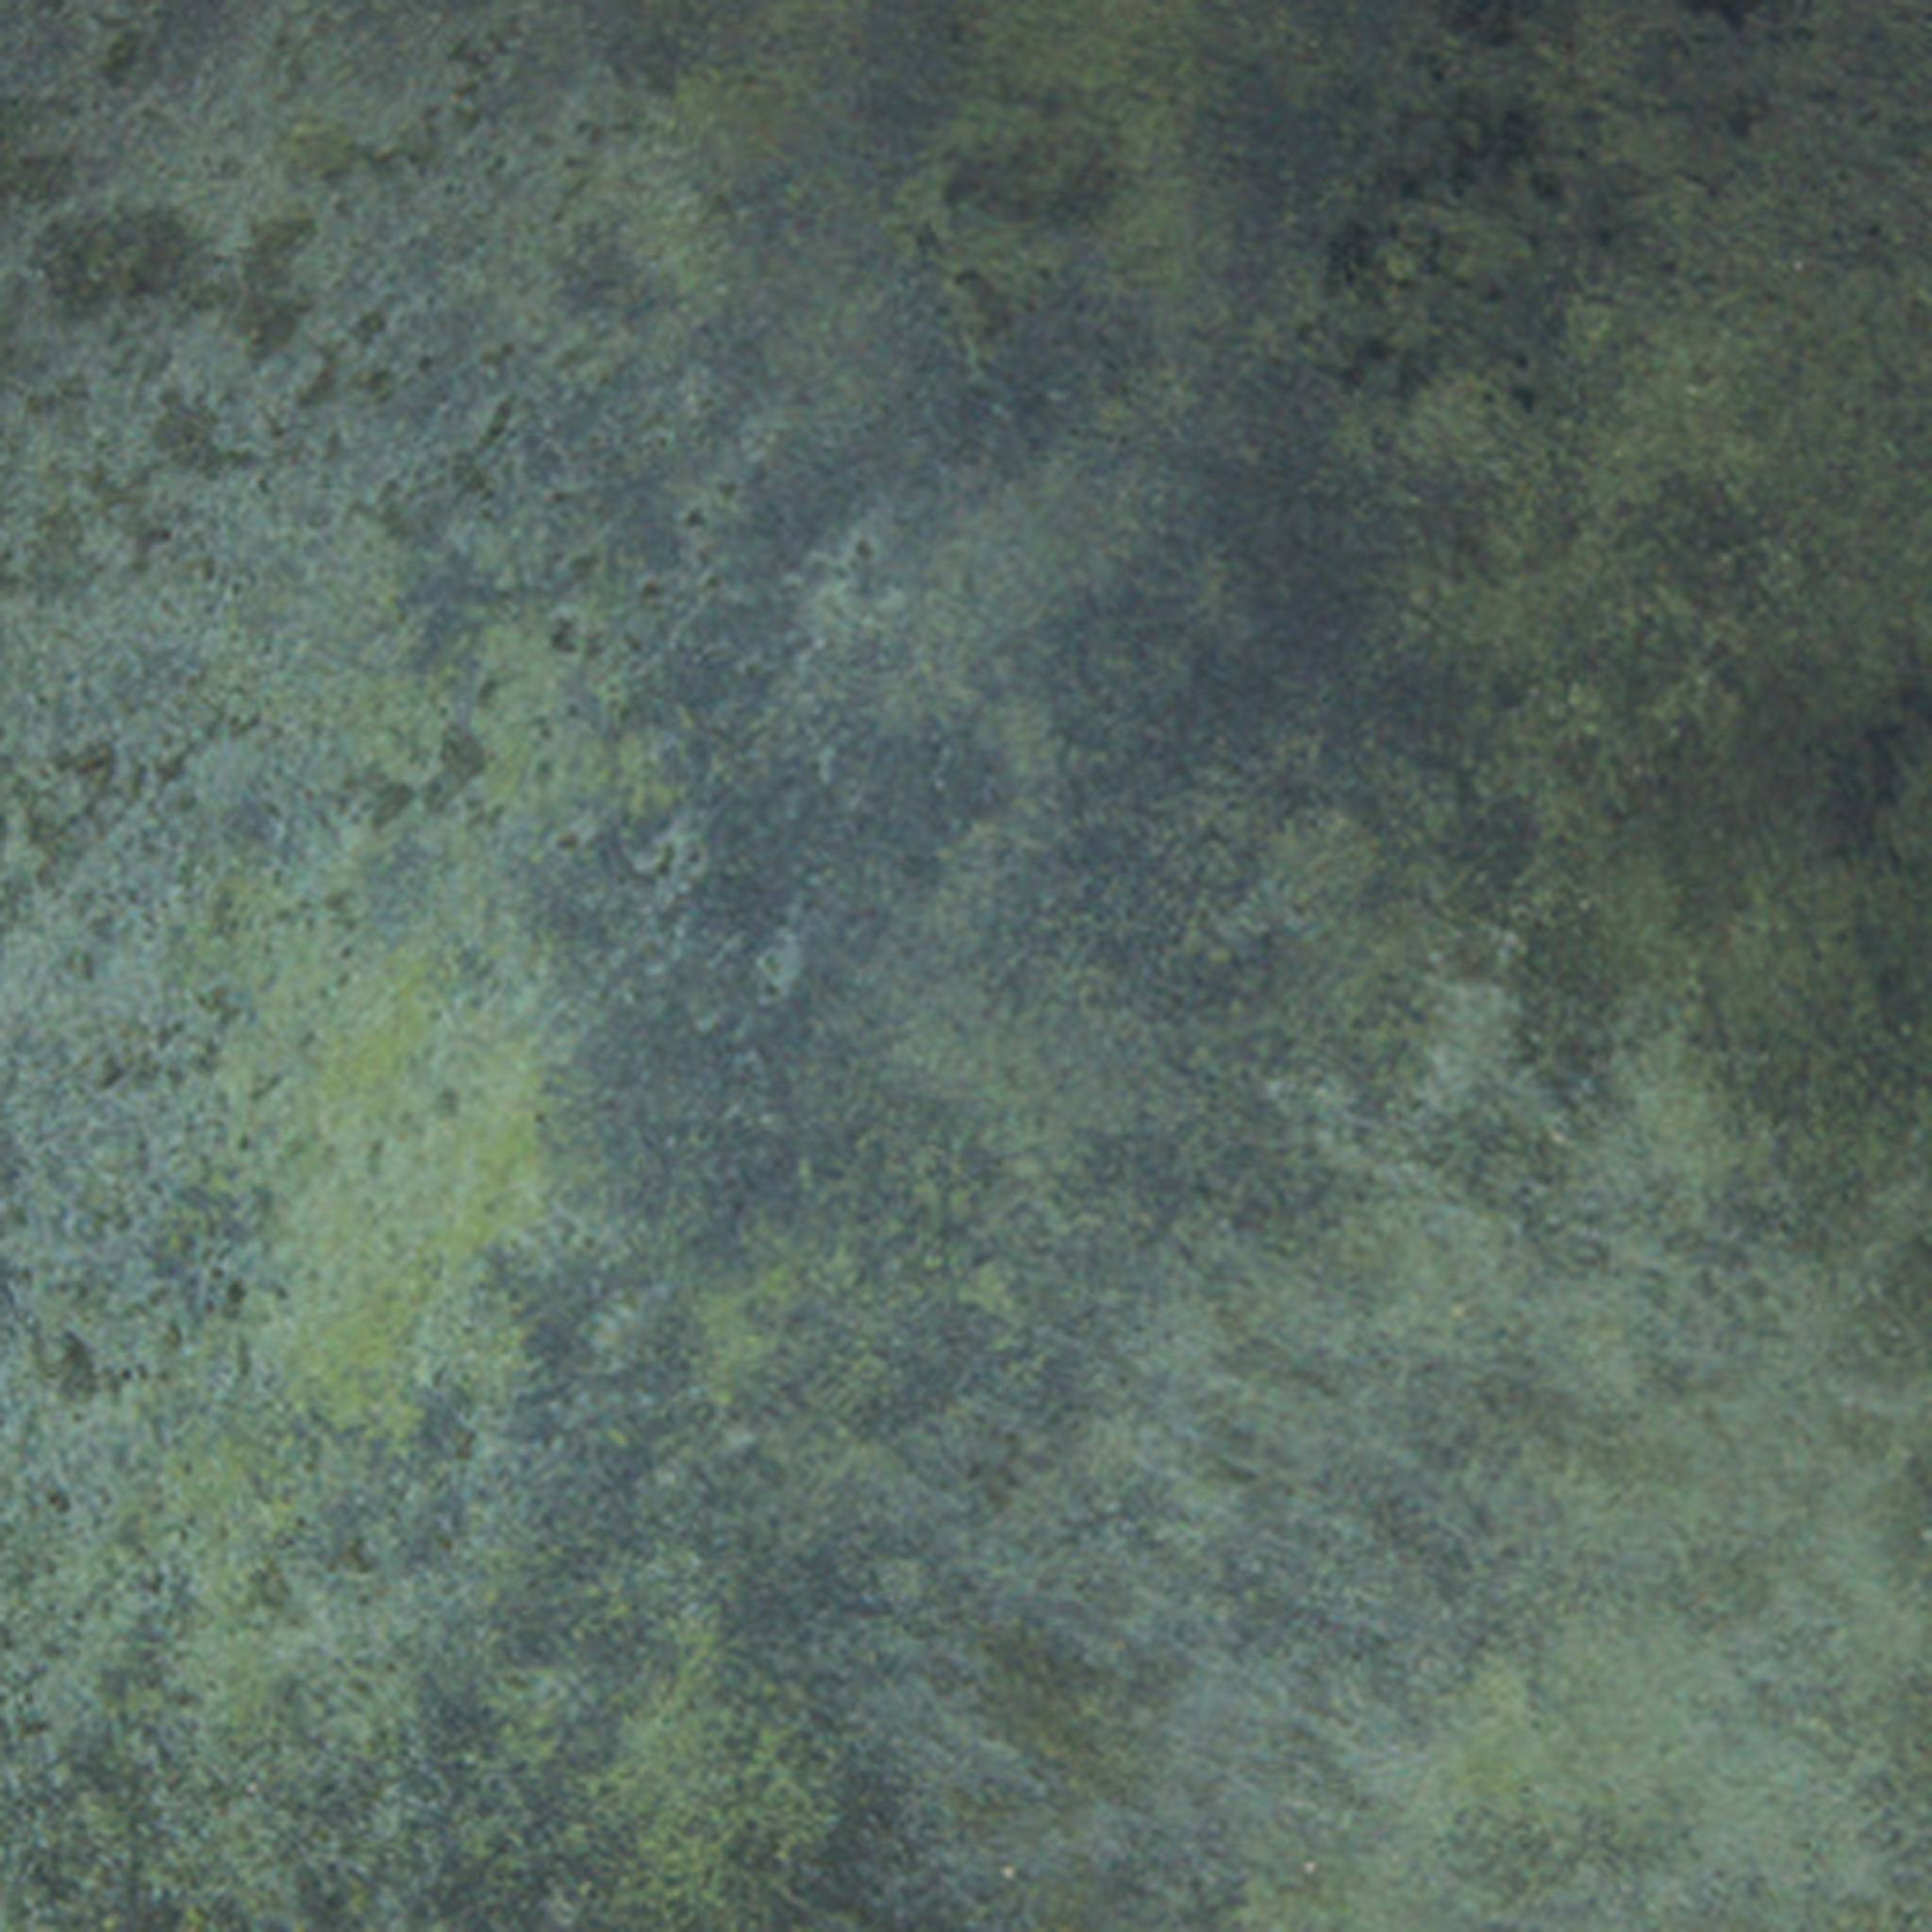 finishes-painted-verdigris-bespoke-northern-lights.jpg